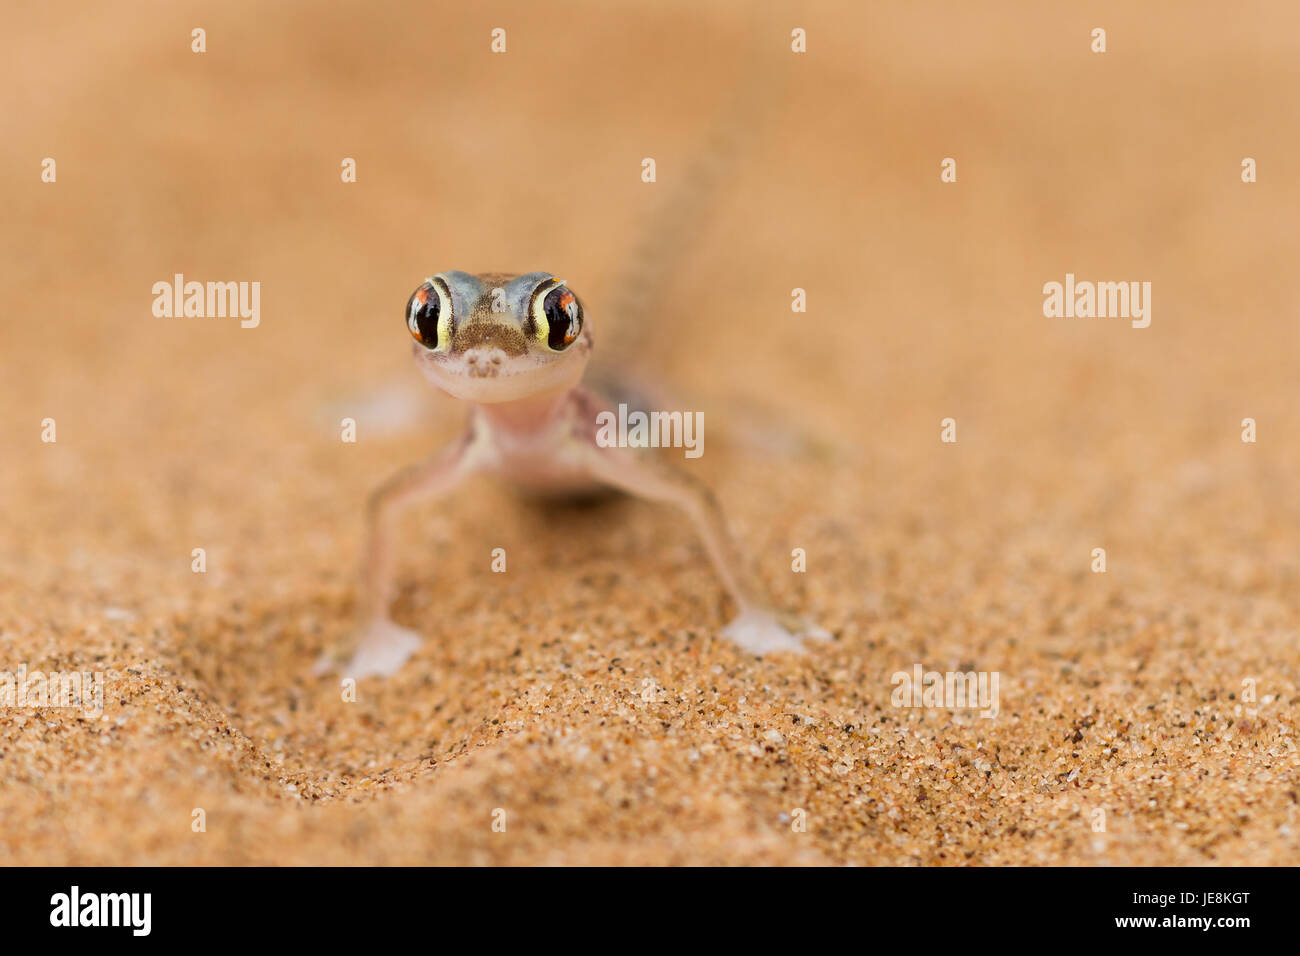 Close up a desert gecko, Namib desert, Namibia Stock Photo